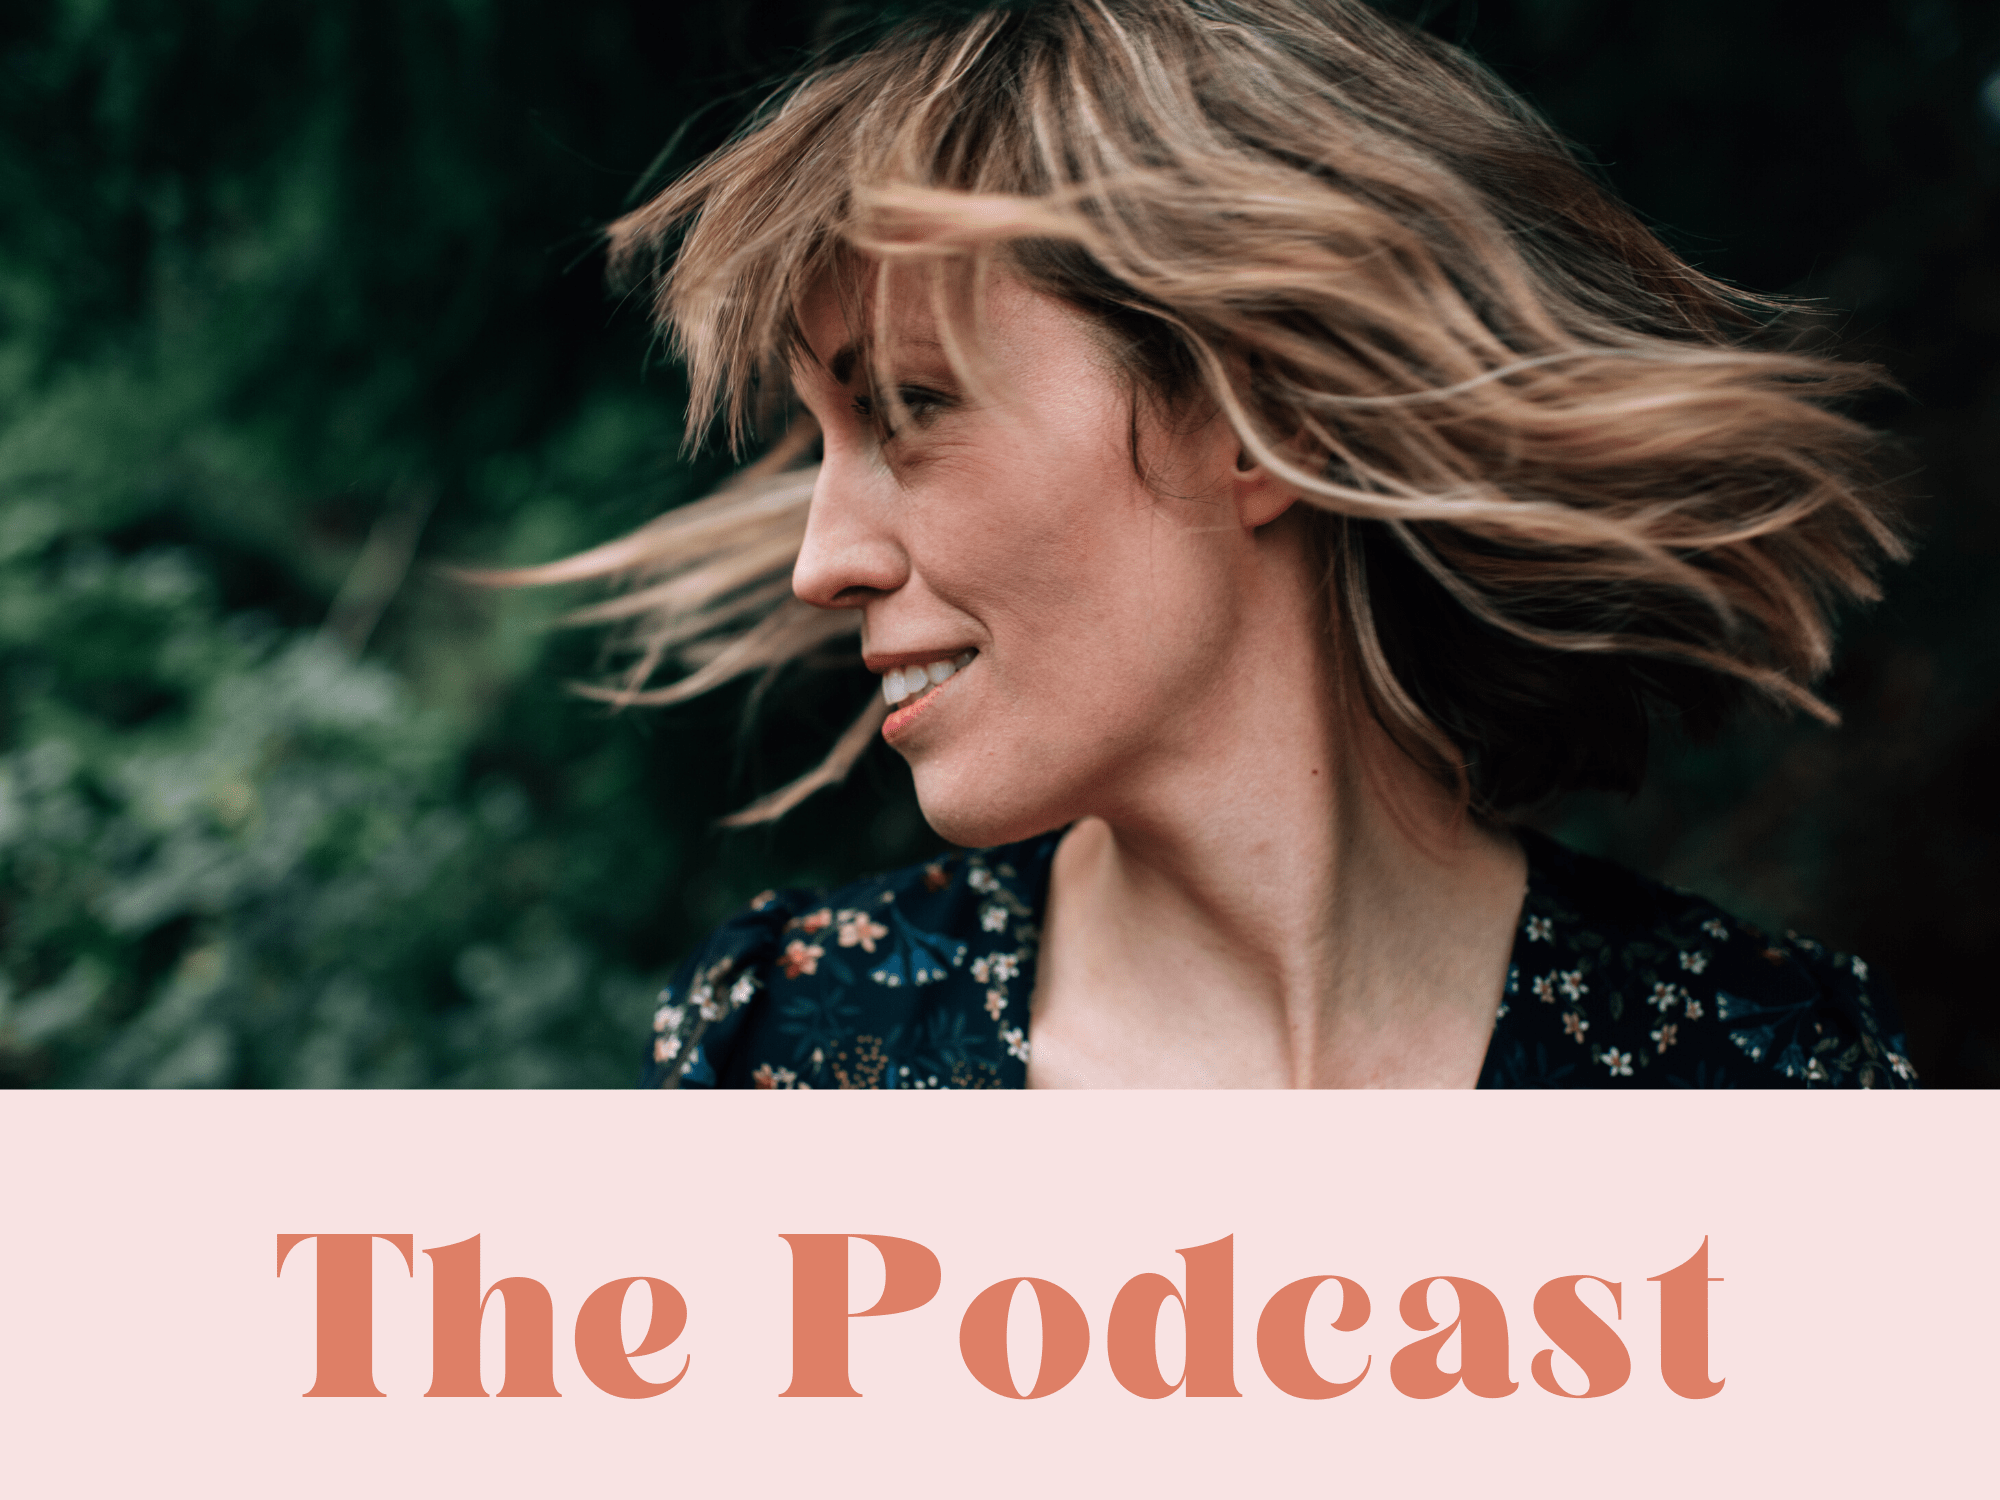 simple on purpose podcast for moms